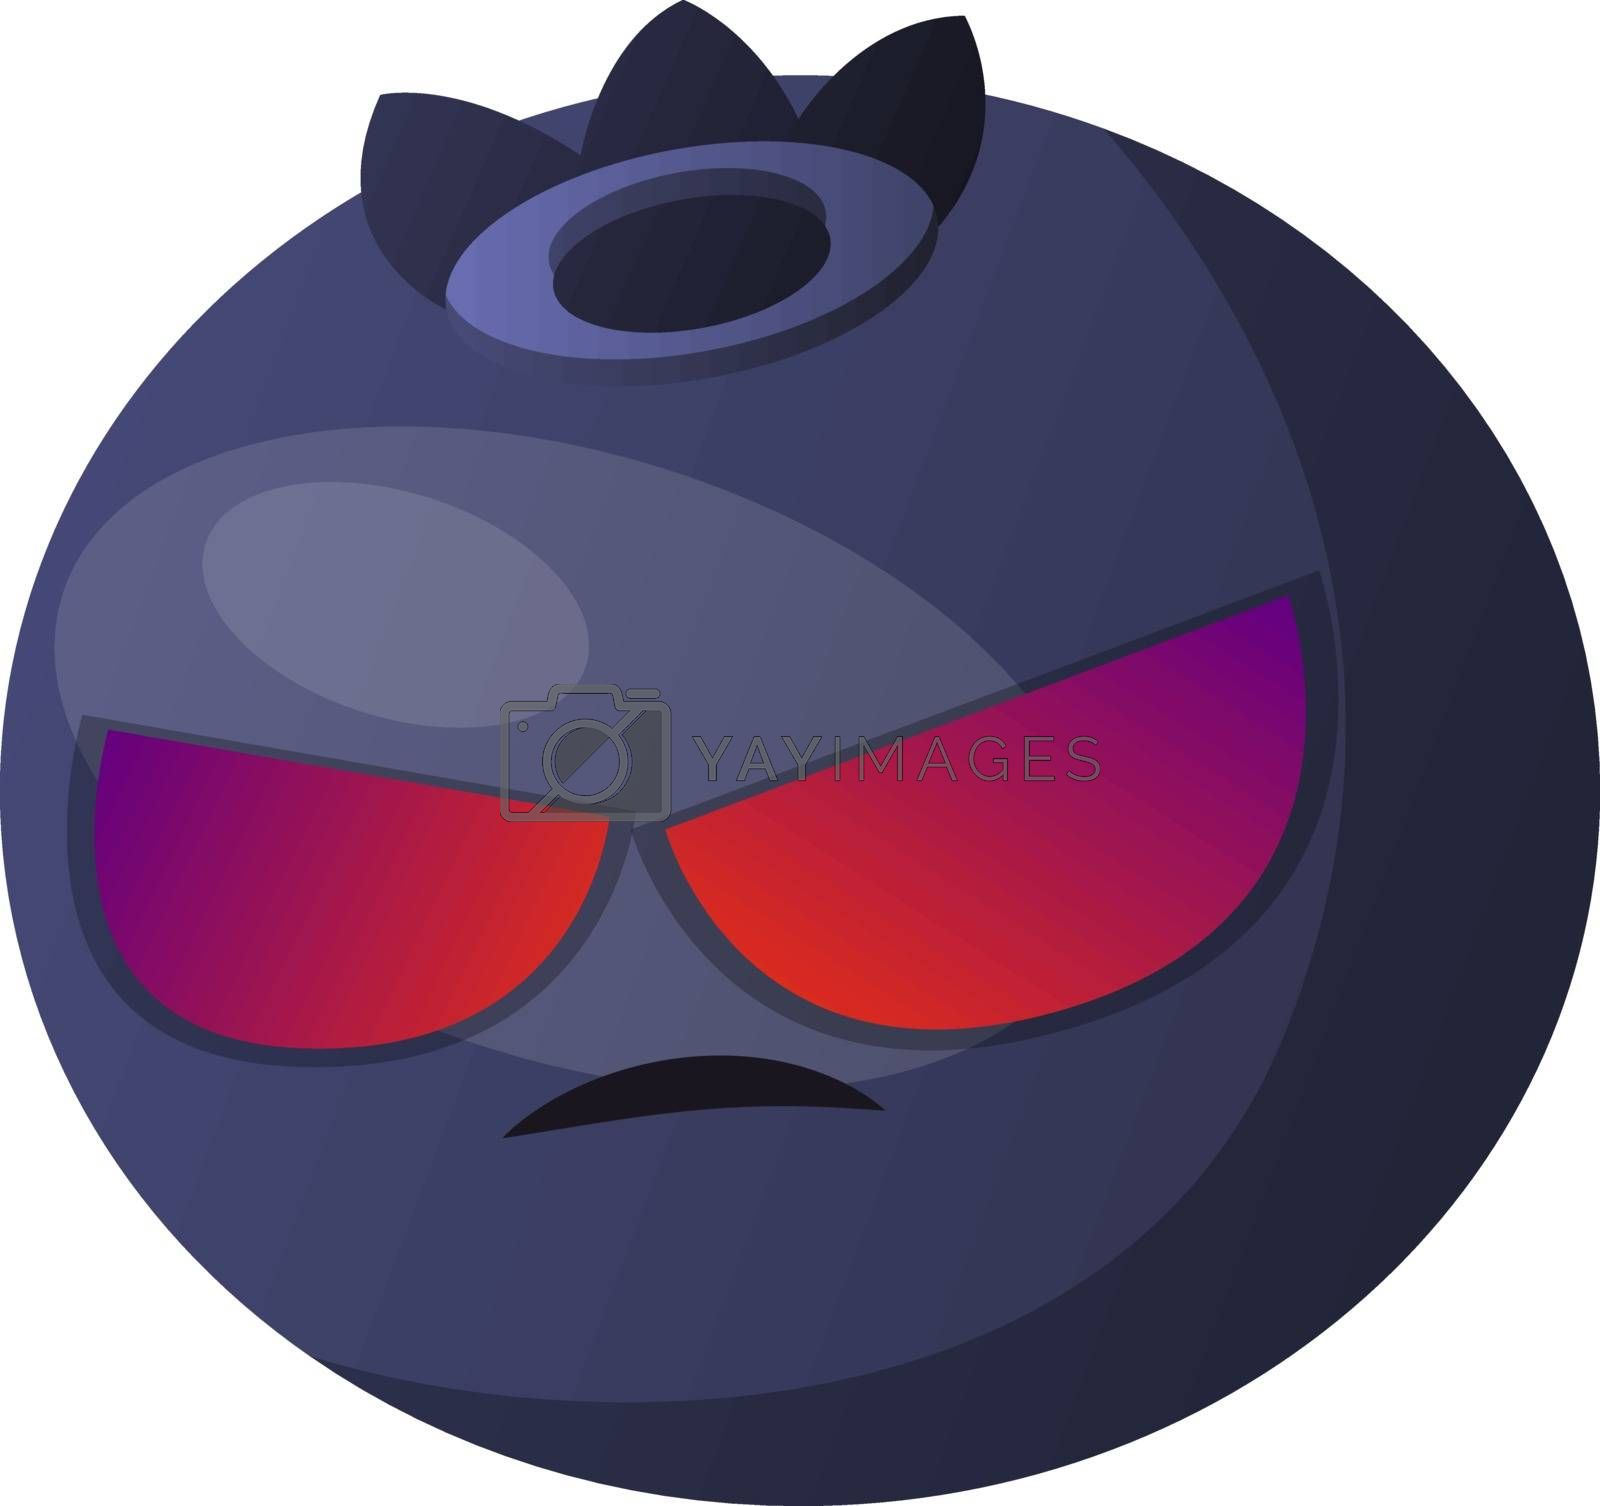 Royalty free image of Angry blueberry illustration vector on white background by Morphart